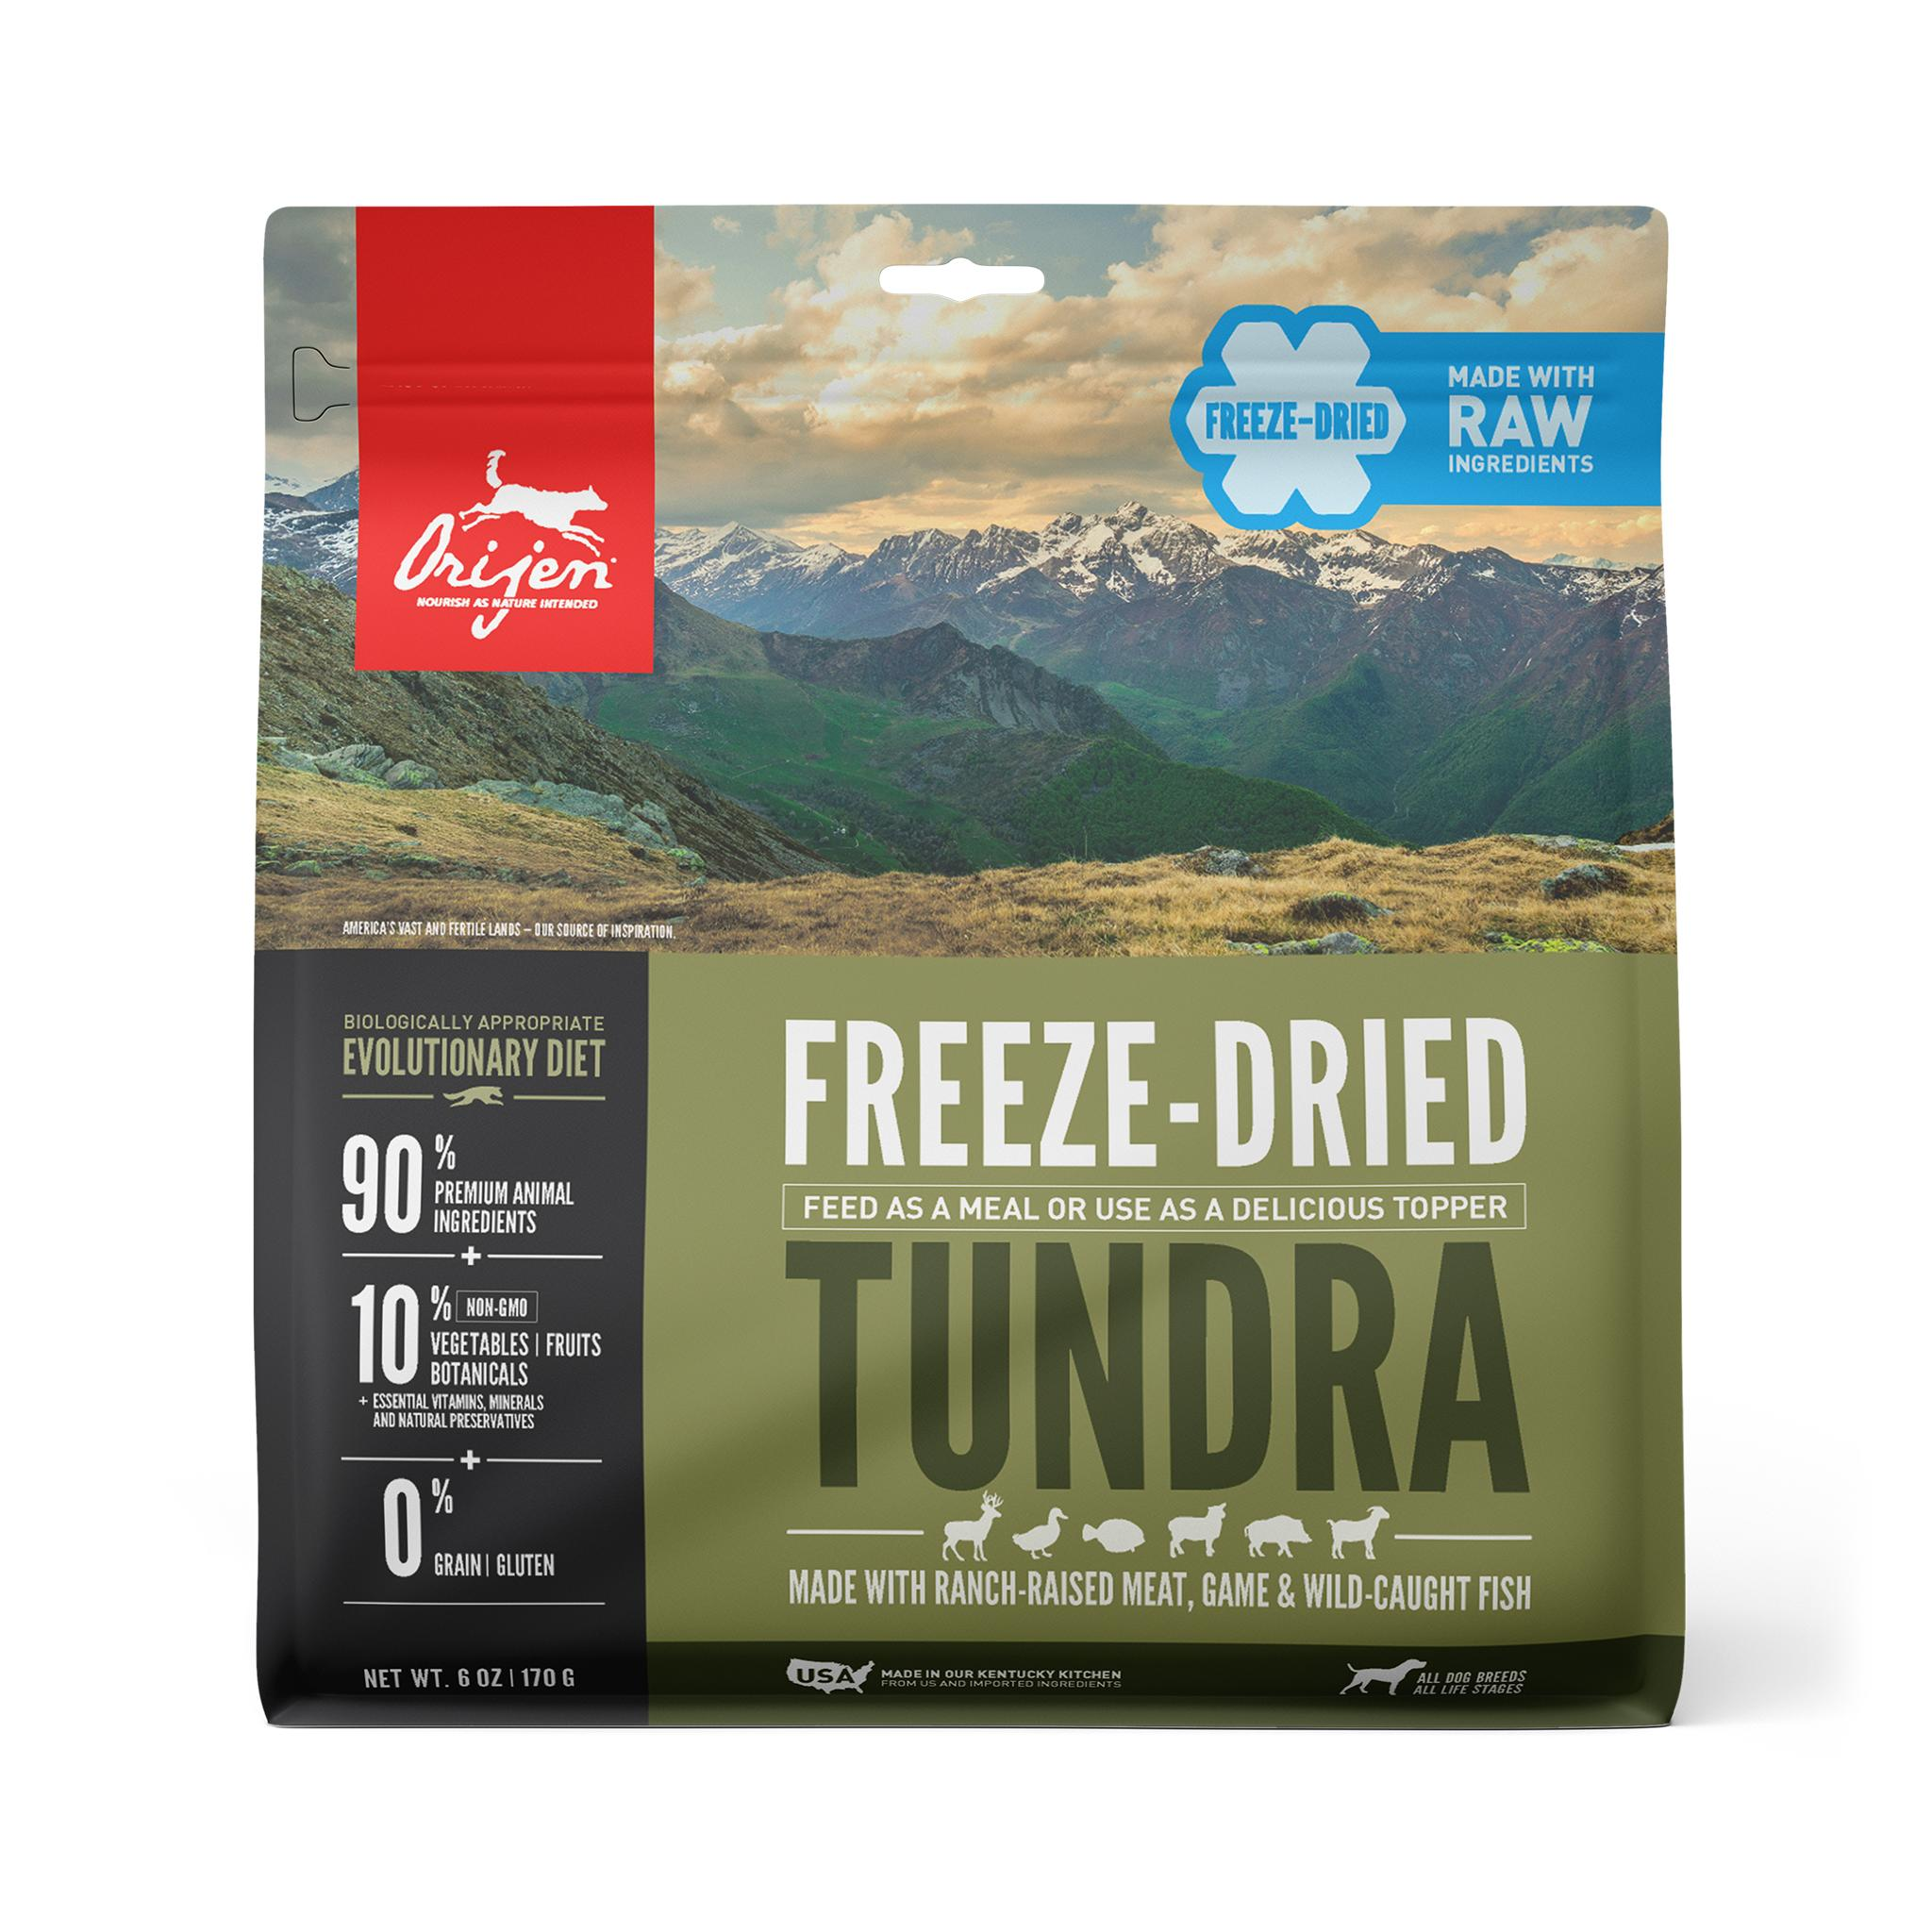 ORIJEN Tundra Grain-Free Freeze-Dried Dog Food Image